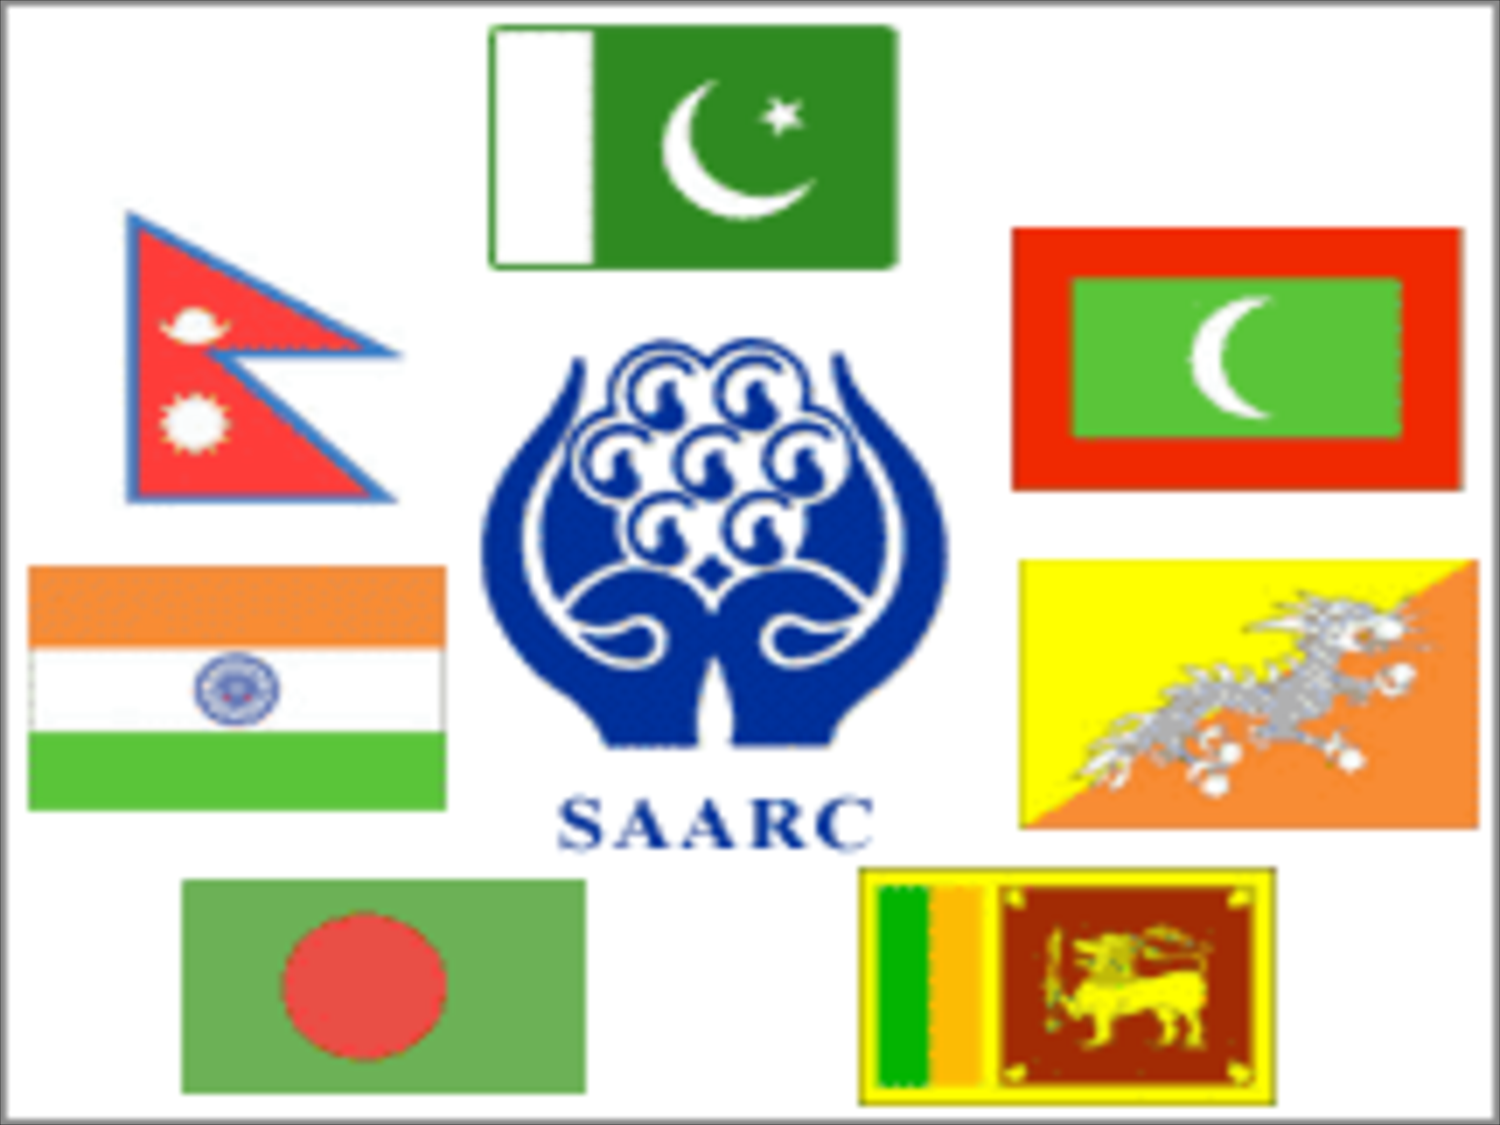 india s trade with saarc nations India's role in saarc india maldives  saarc nations comprise 3% of the world's area and contain 21%  india's role in saarc 18.